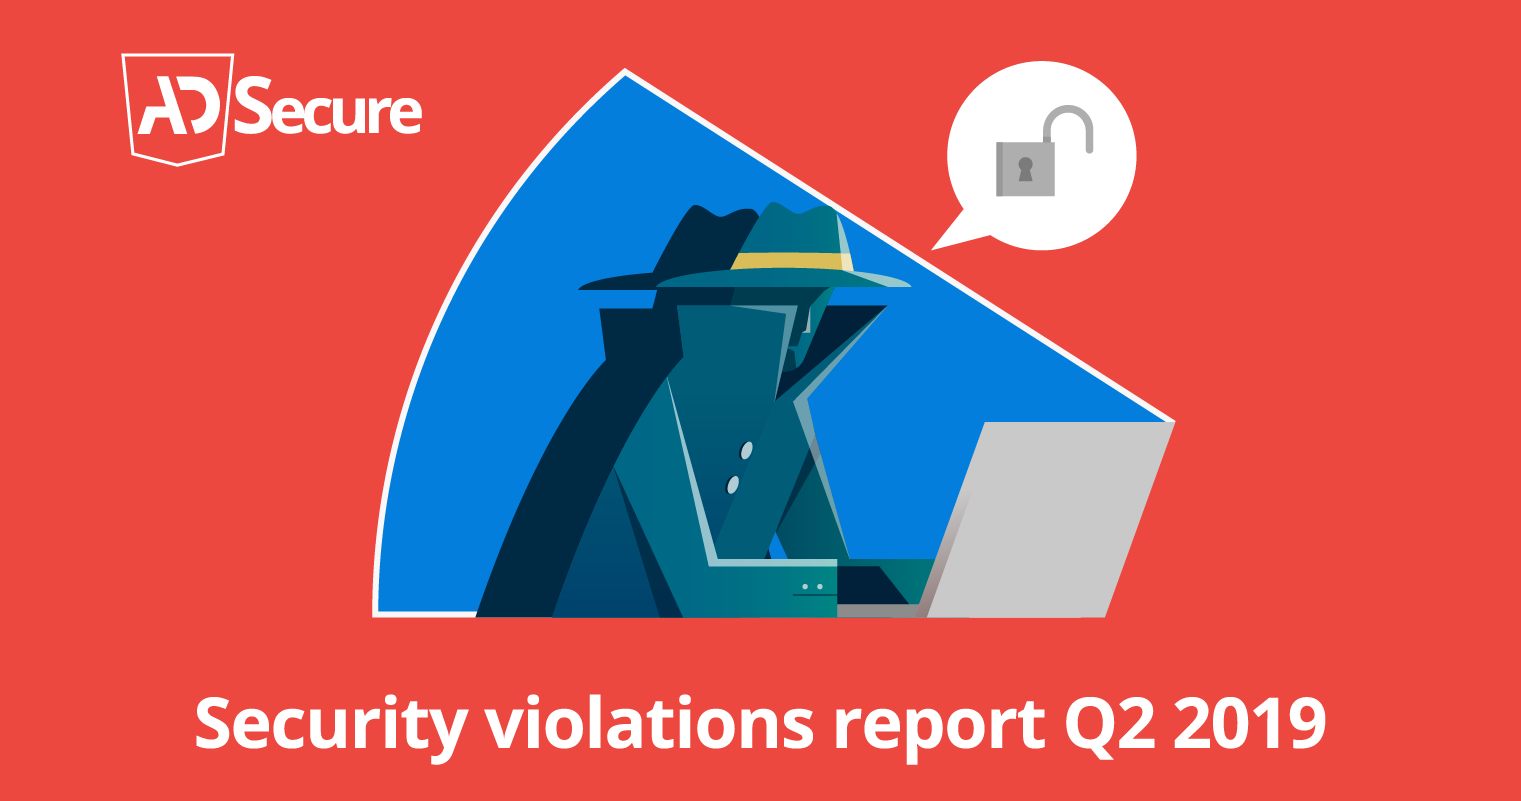 AdSecure's Security Violations Report For Q2 2019 Reveals Increases in Adware and Scareware Attacks